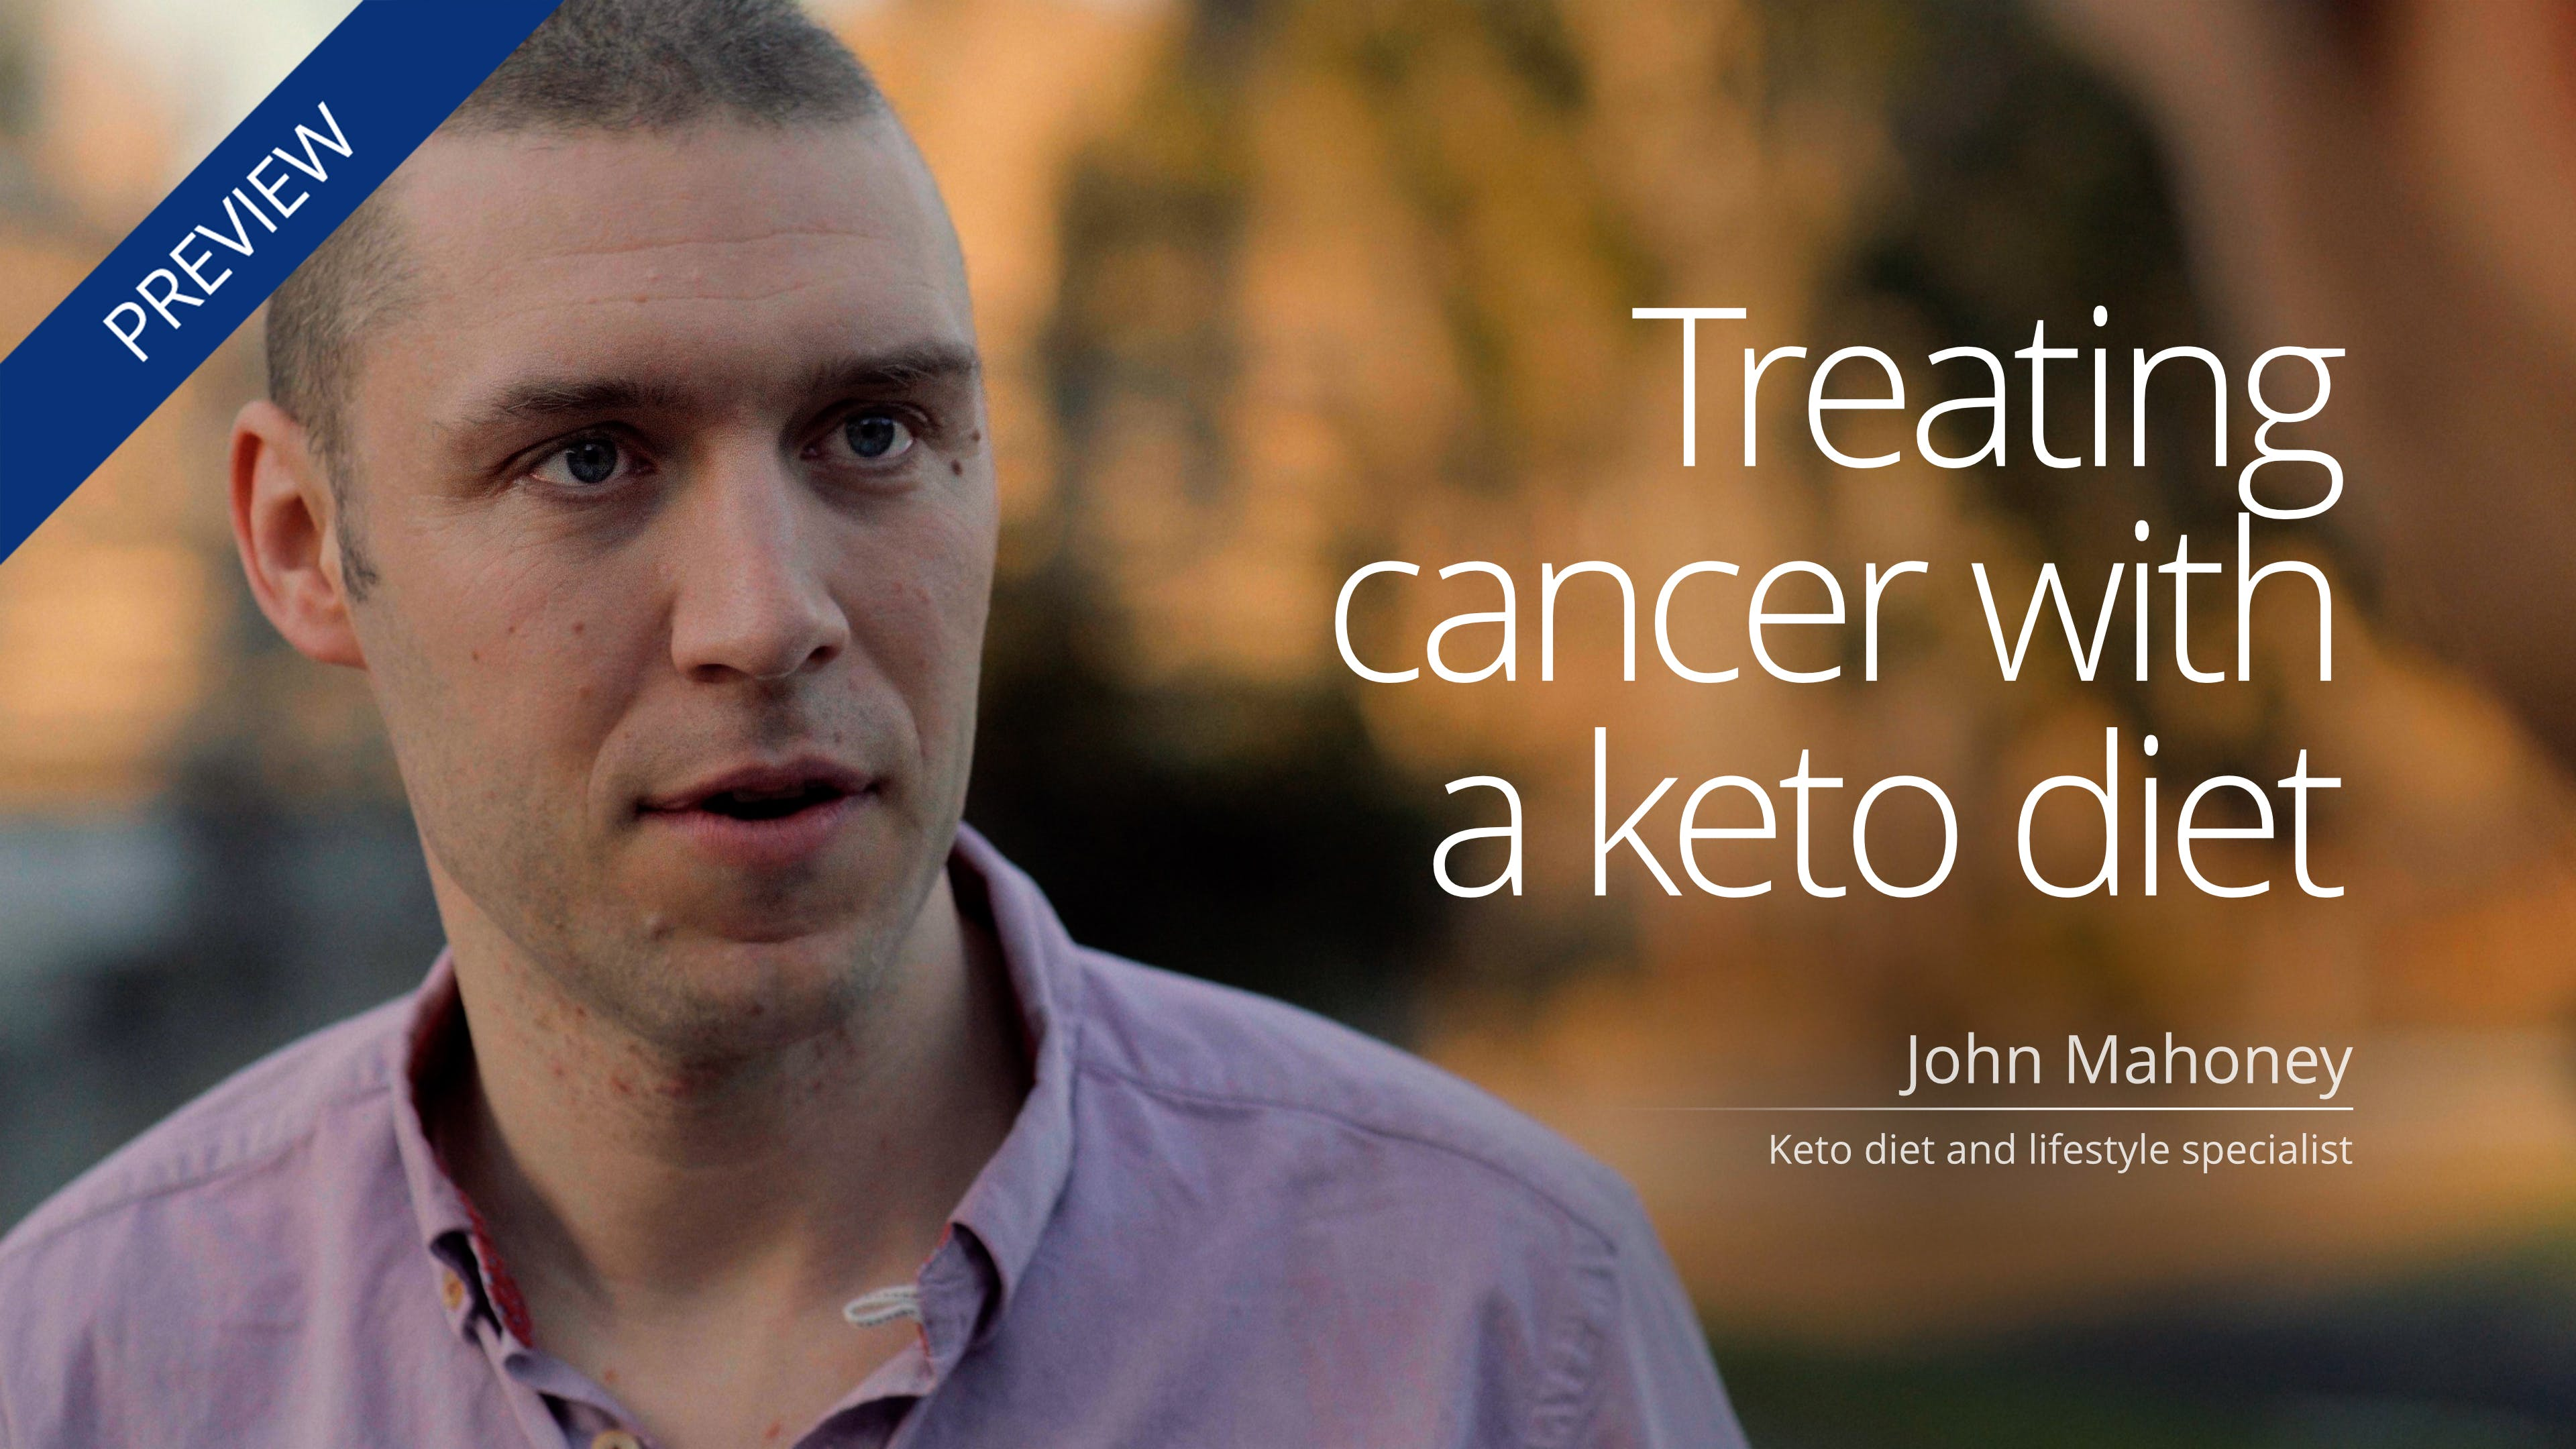 Treating cancer with a keto diet